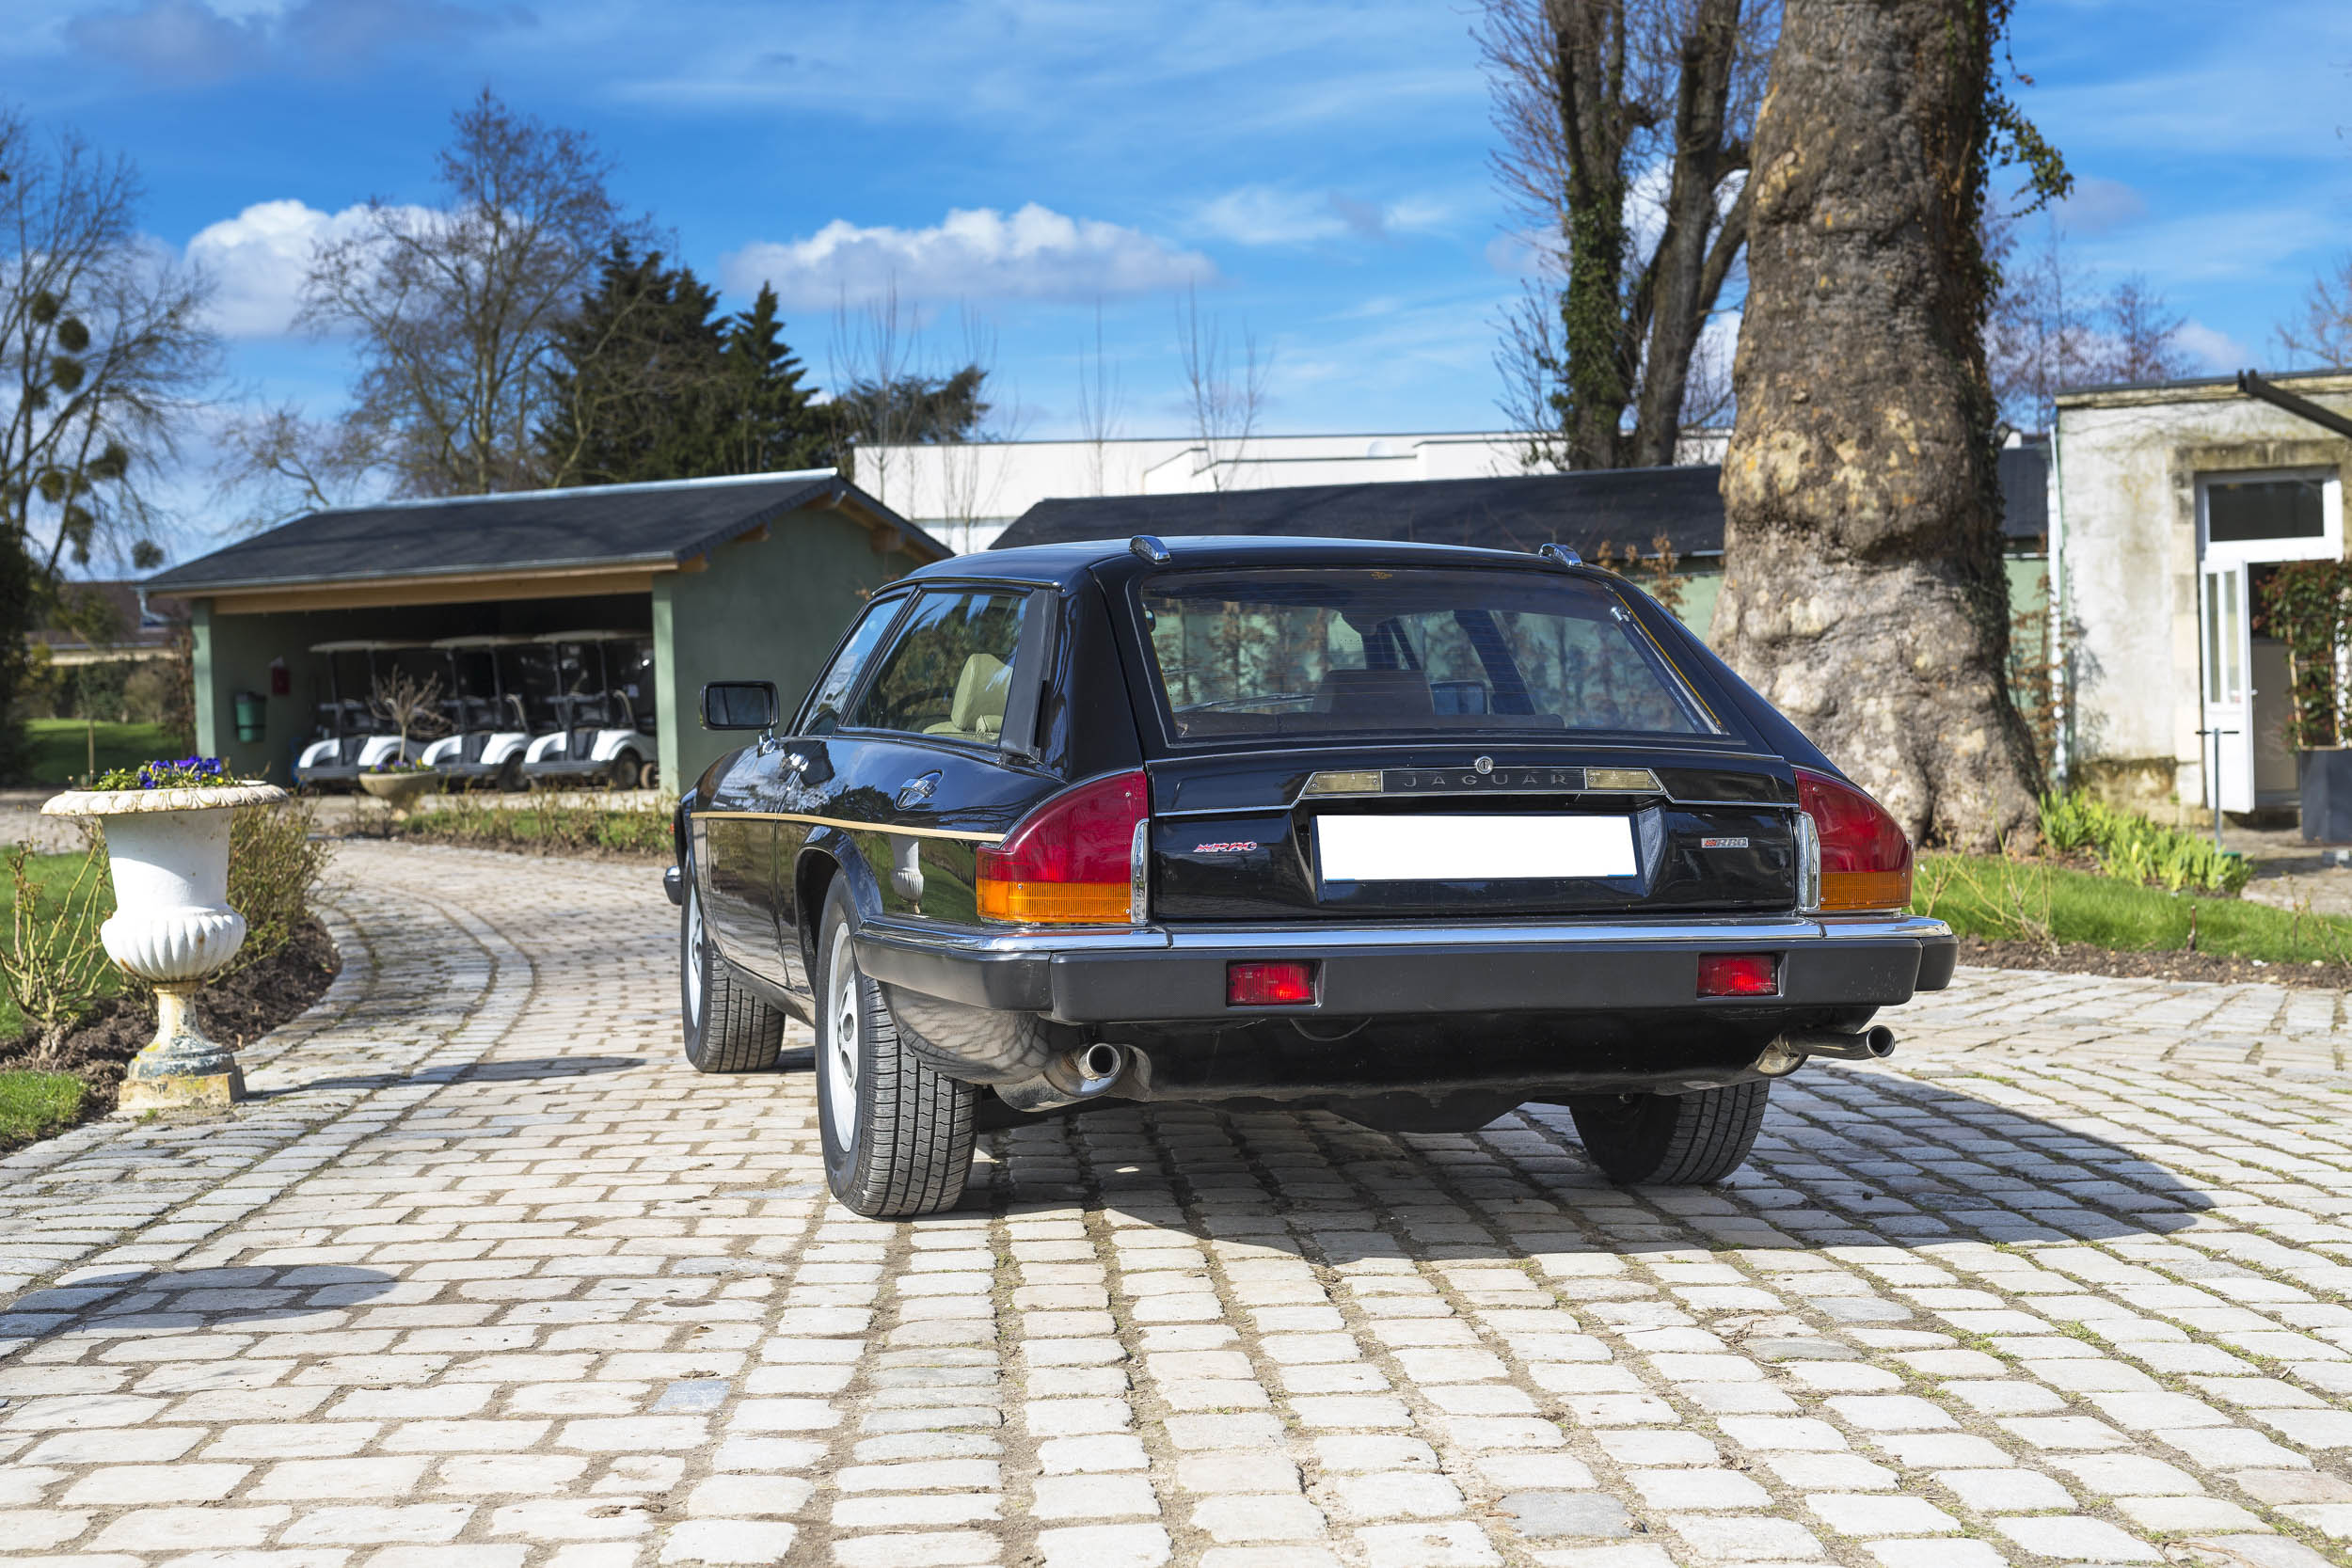 1984 Jaguar XJ-S V12 Lynx Eventer rear